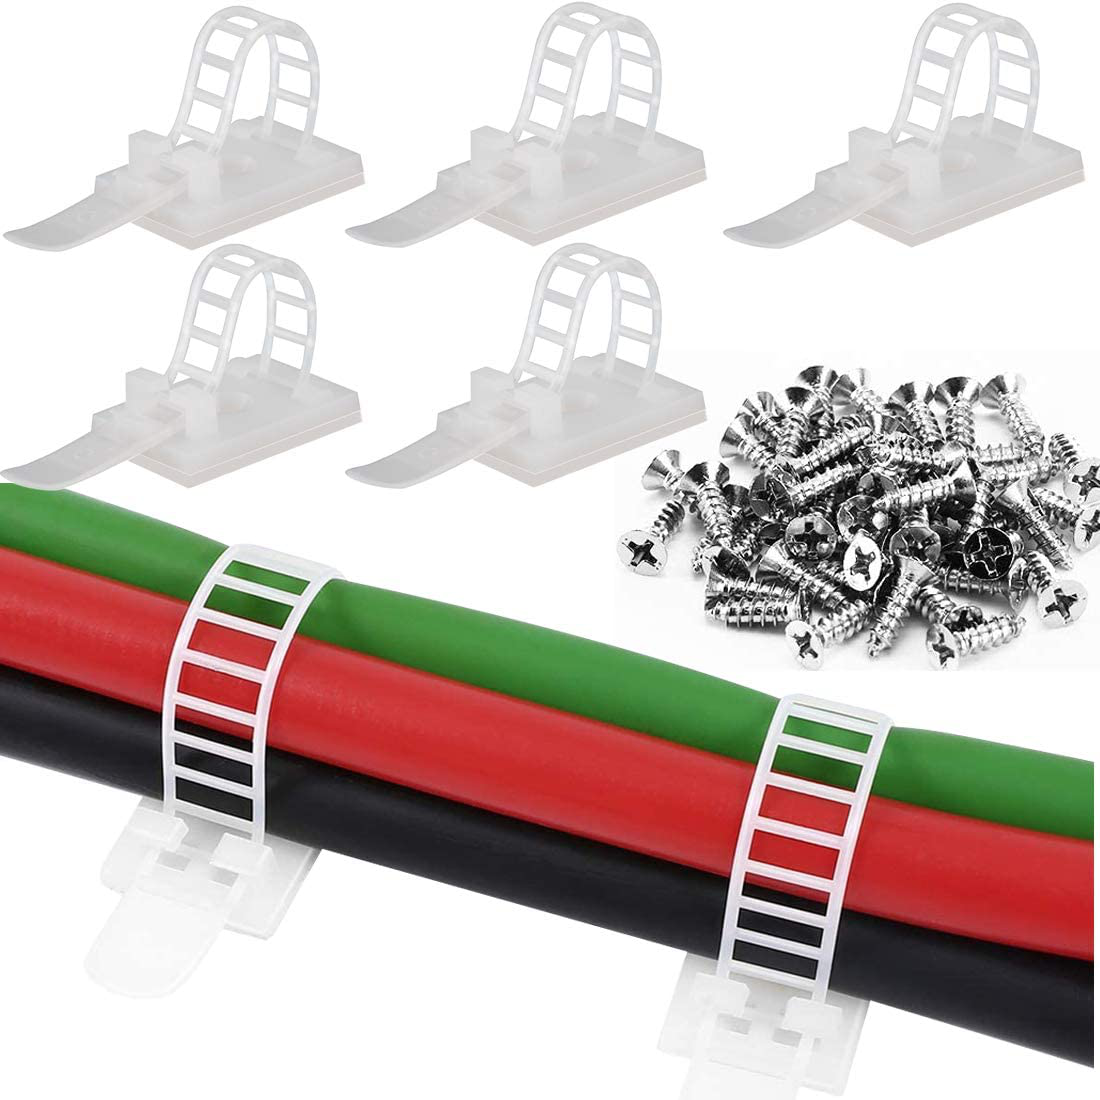 50Pcs Reusable Adhesive Cable Management Extra Screw Hole, Multi-Purpose Cable